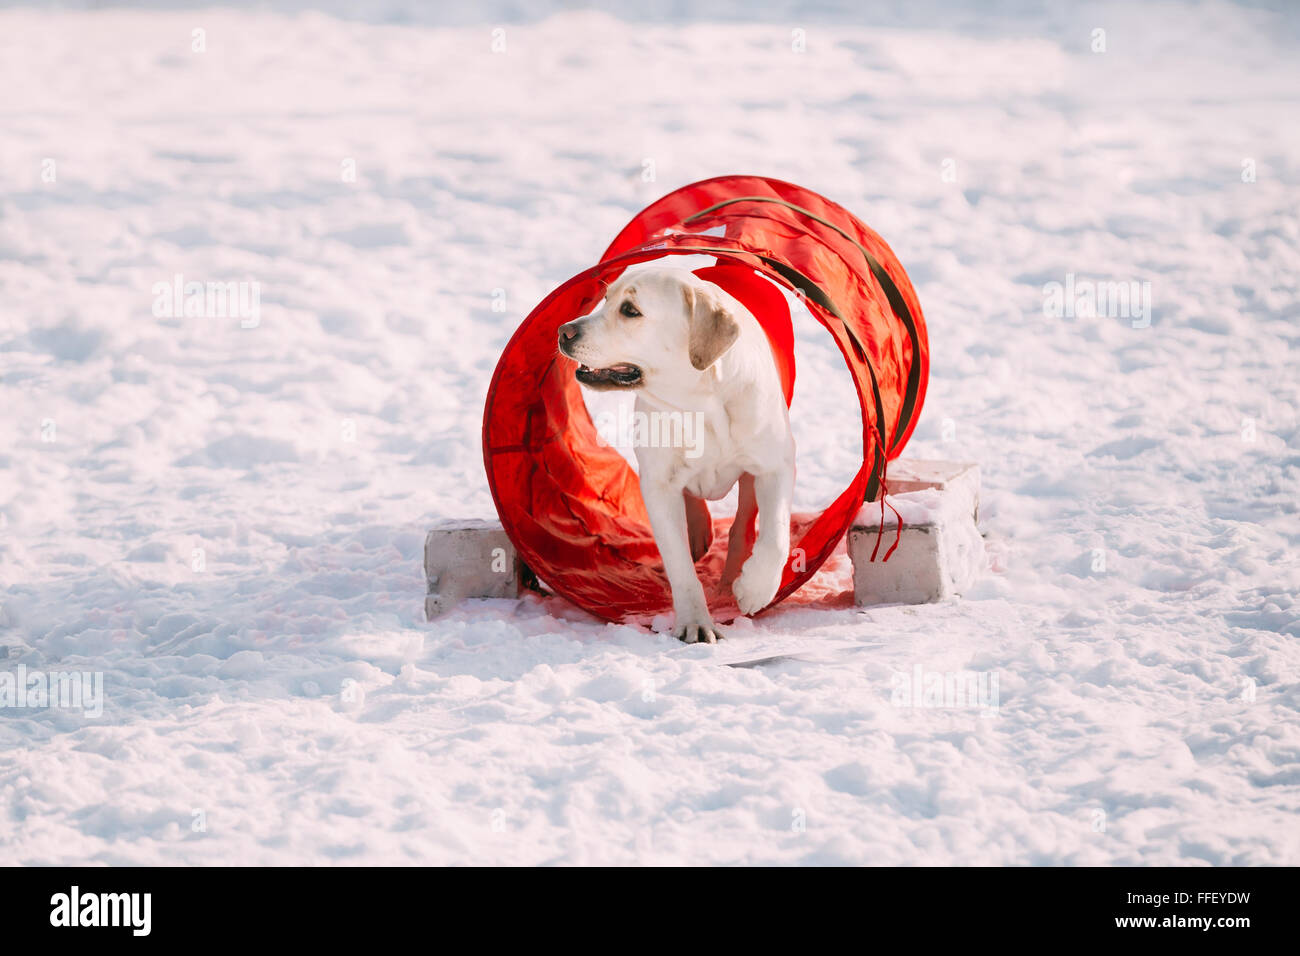 Young funny labrador dog playing outside in snow, winter season. Sunny day. Agility dog training. - Stock Image